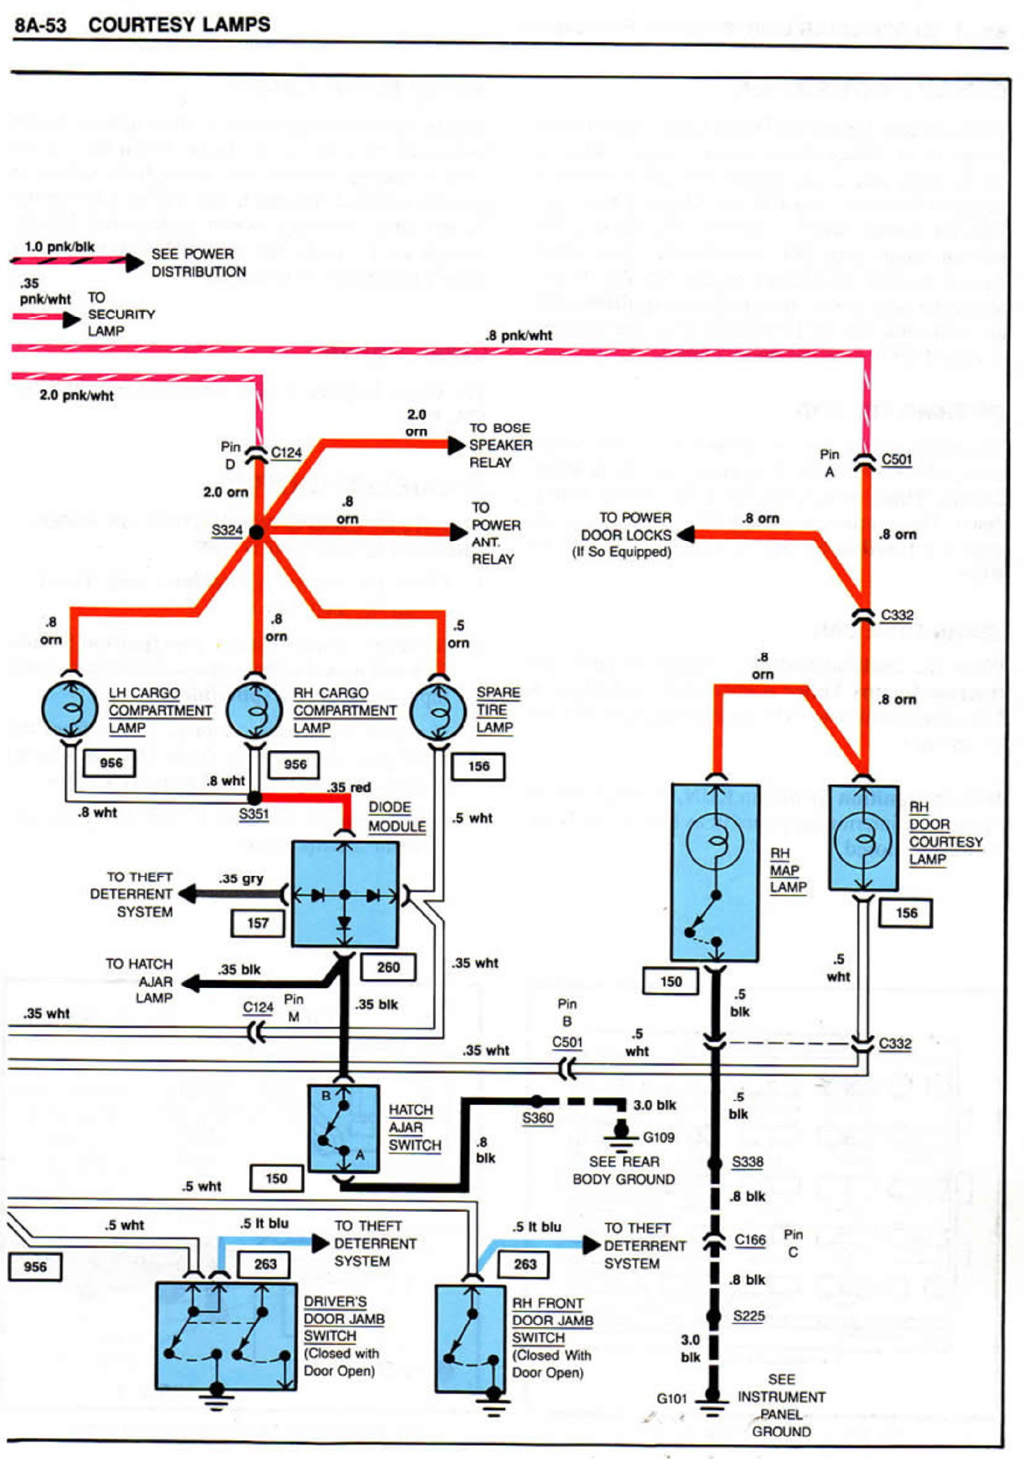 c5 corvette radio wiring diagram c5 image wiring c6 corvette radio wiring diagram c6 corvette nav radio wiring on c5 corvette radio wiring diagram